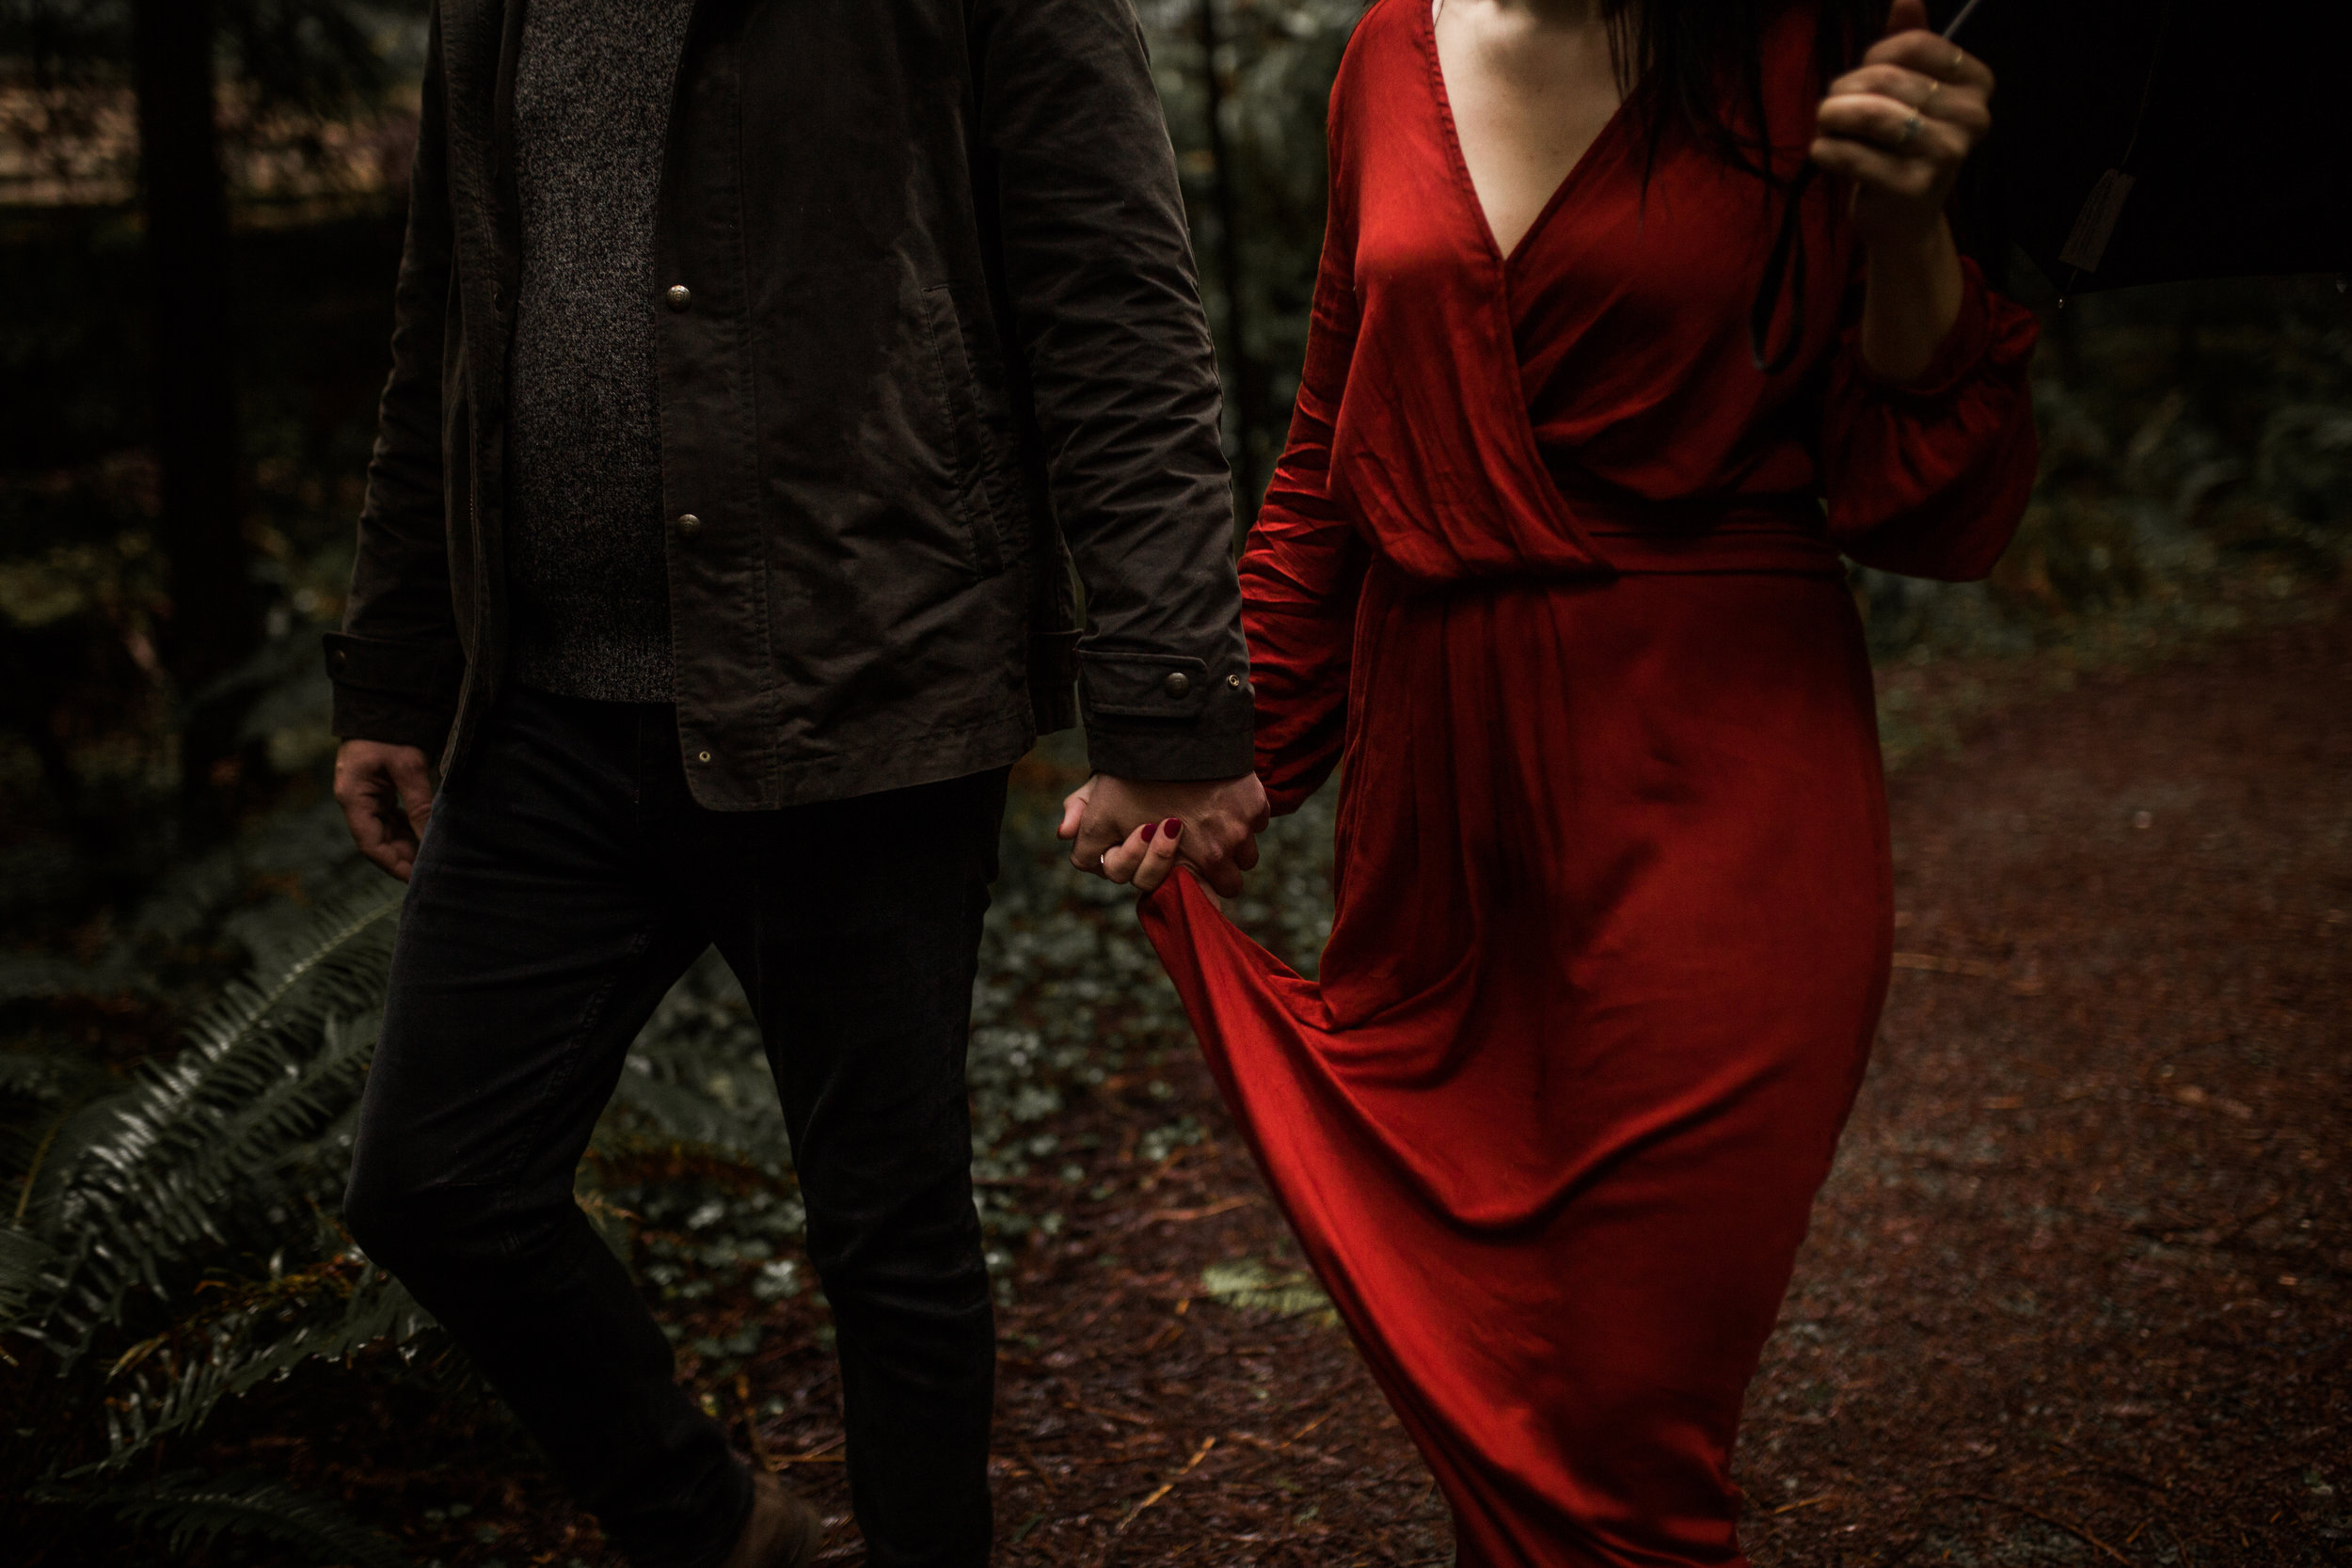 nicole-daacke-photography-redwoods-national-park-forest-rainy-foggy-adventure-engagement-session-humboldt-county-old-growth-redwood-tree-elopement-intimate-wedding-photographer-50.jpg